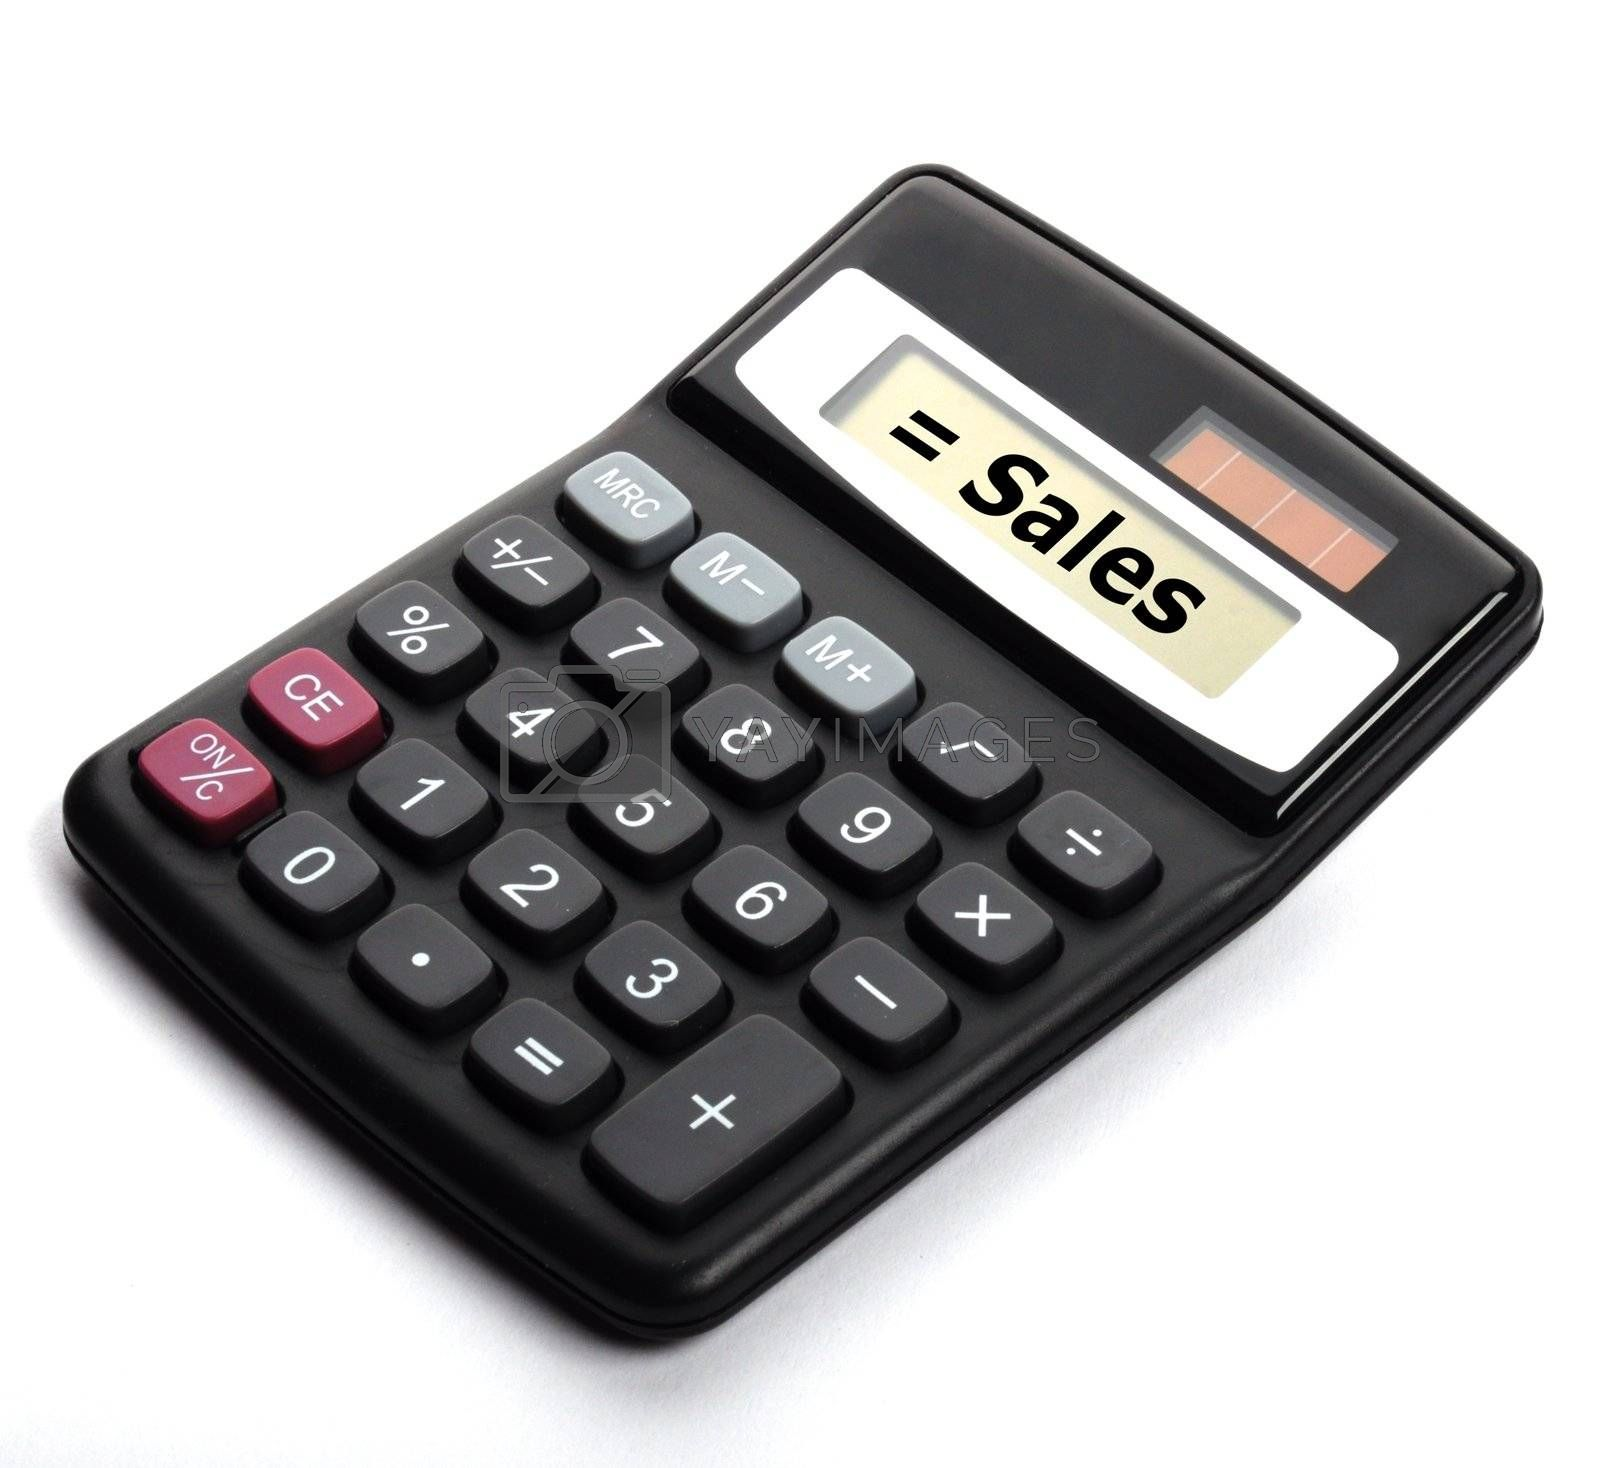 sales growht concept with business calculator on office